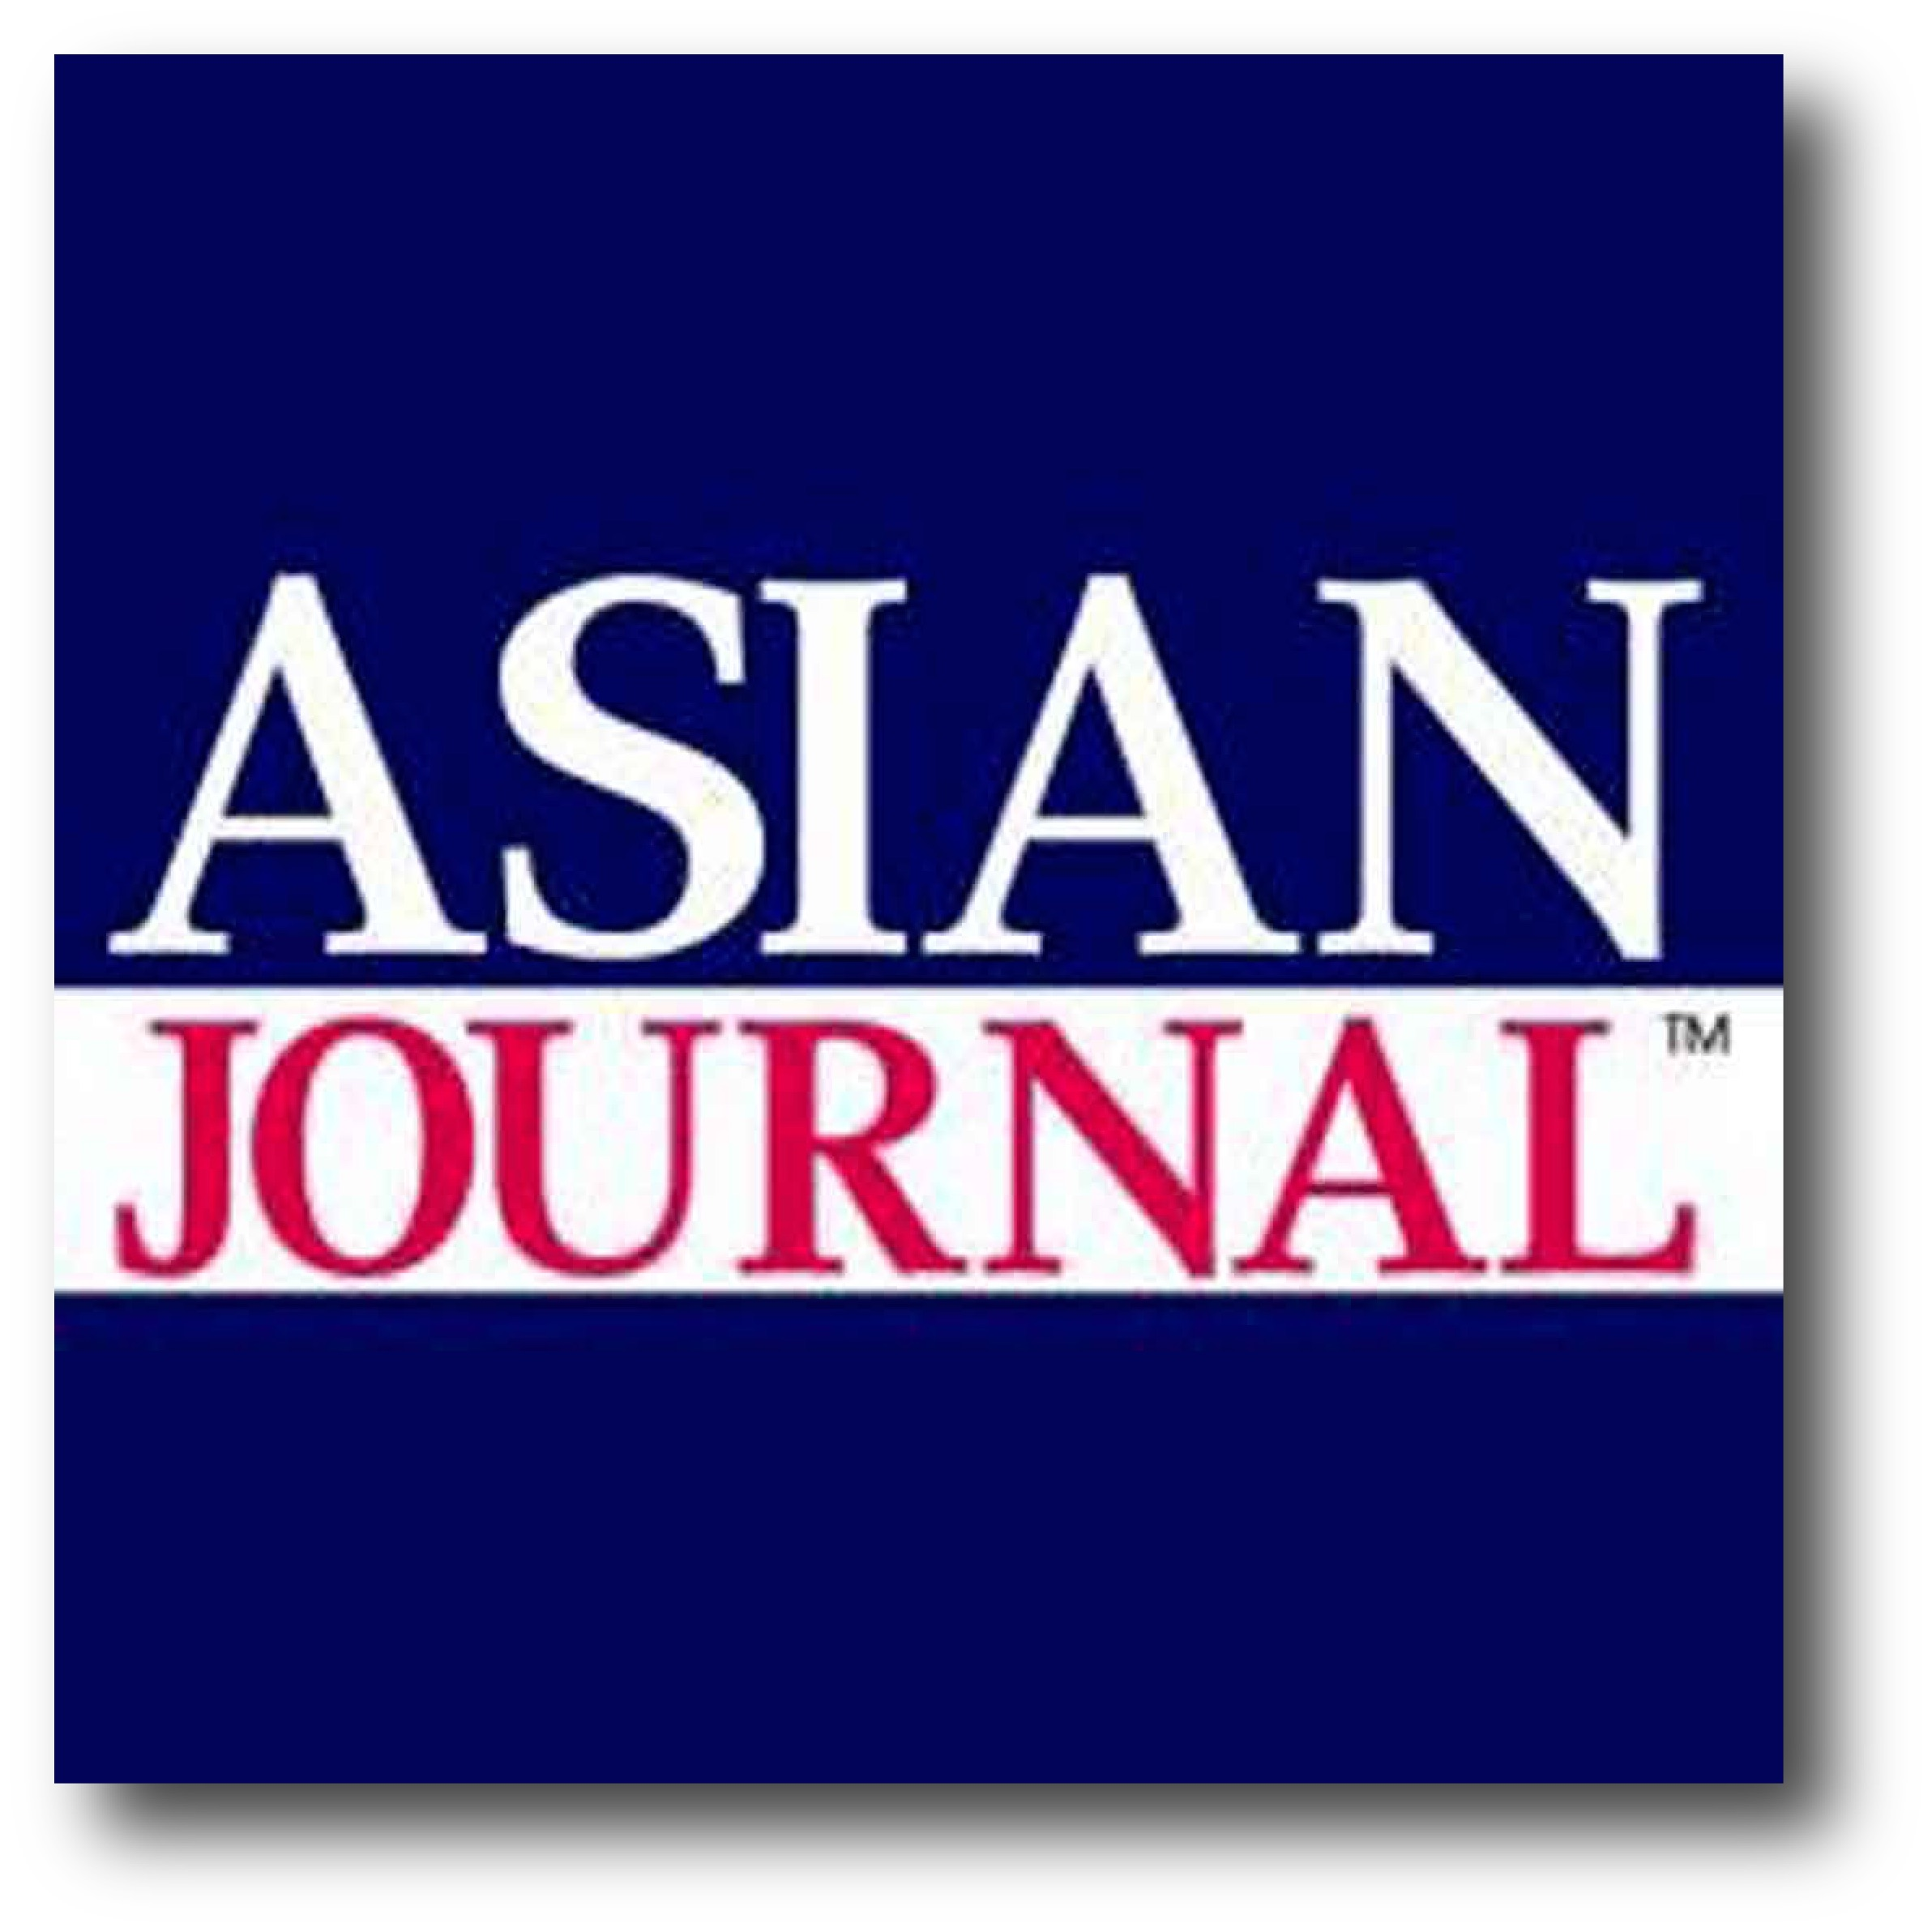 Asian Journal News